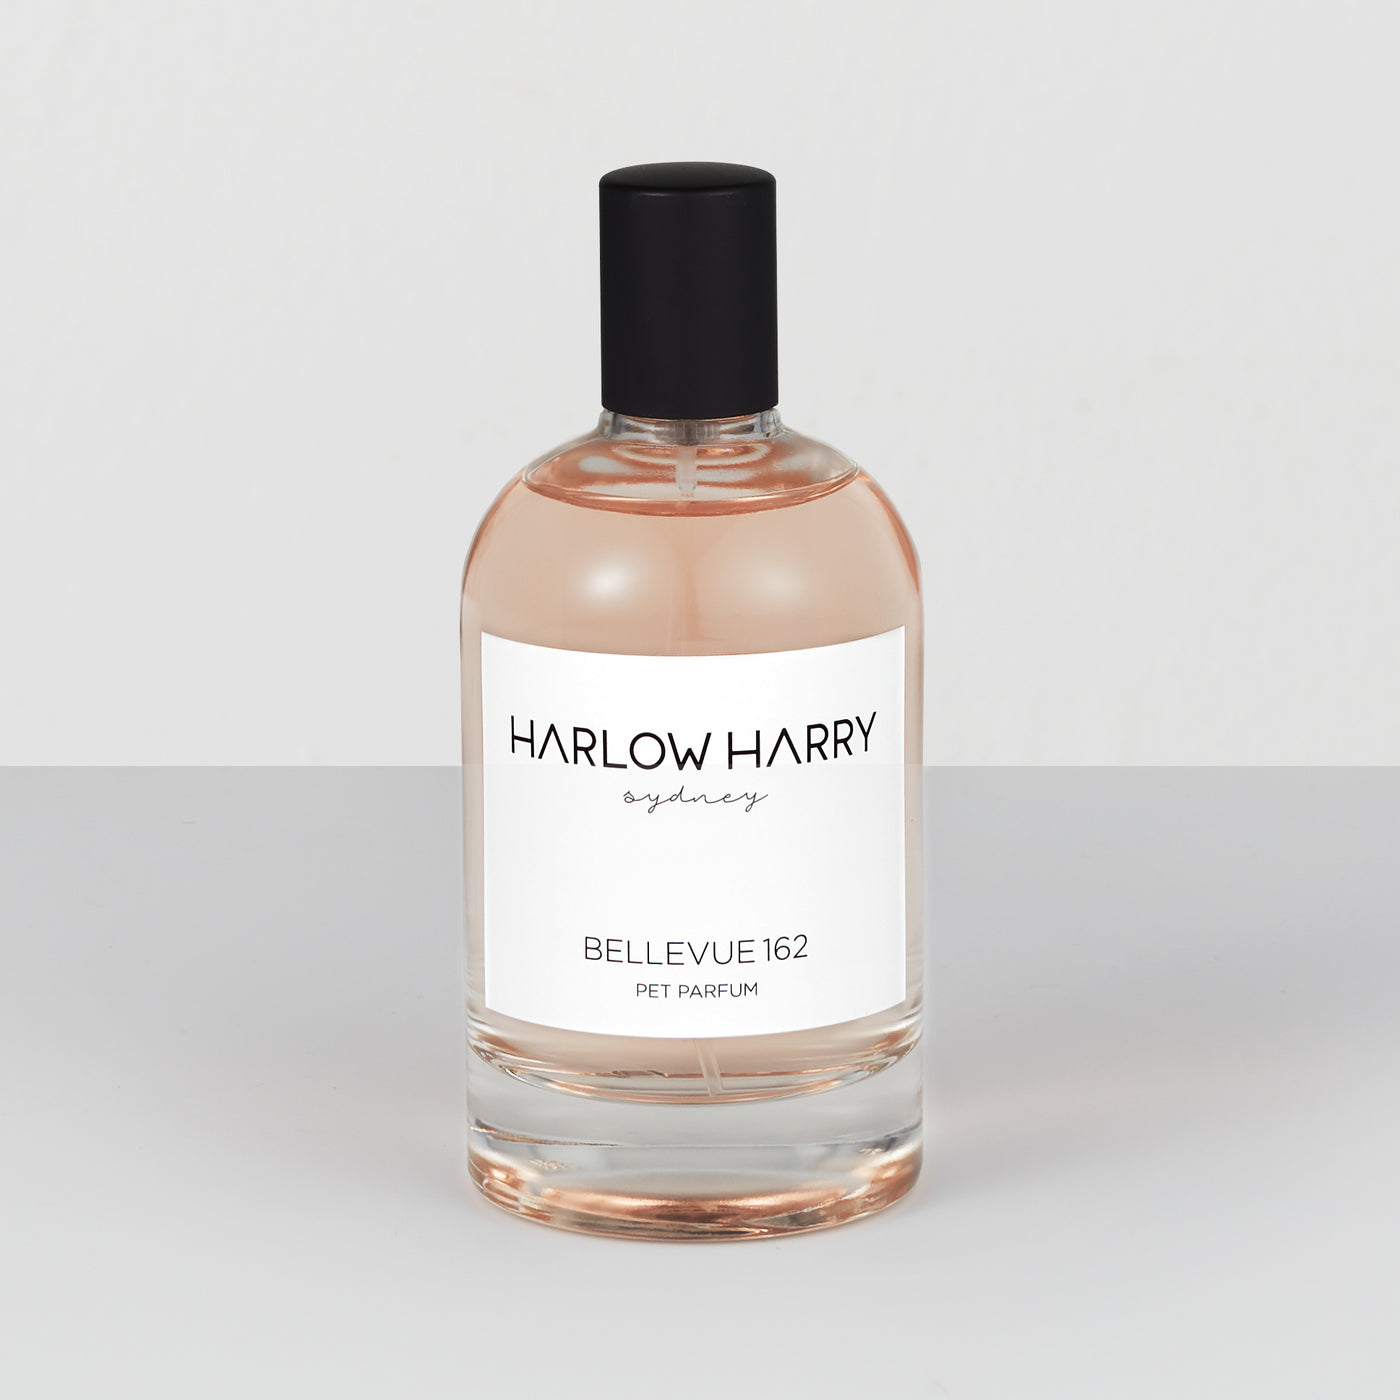 Harlow Harry Bellevue 162 | Pet Parfum for Dogs